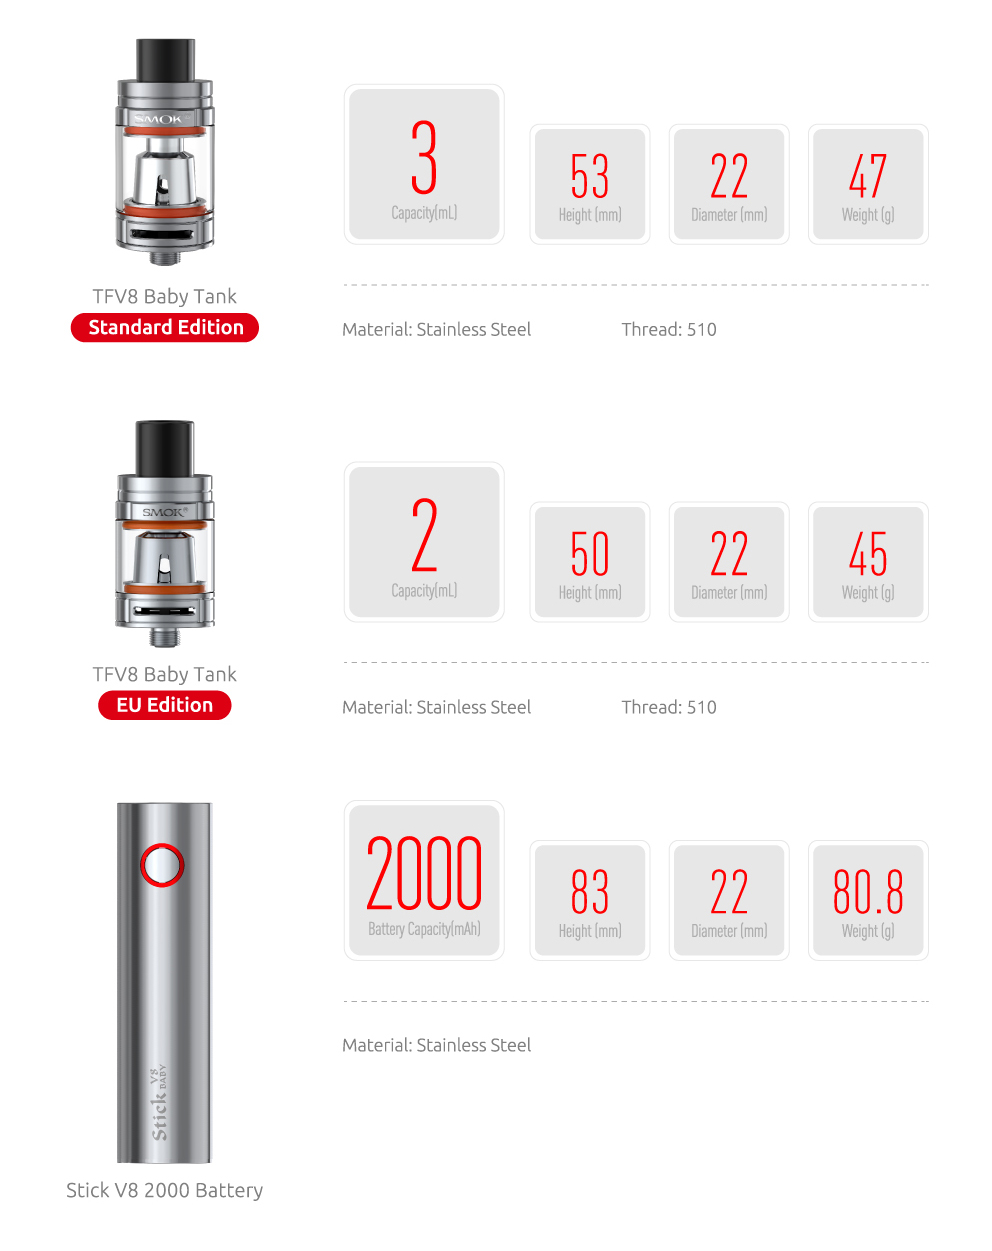 Stick V8 Baby Smok Innovation Keeps Changing The Vaping Experience